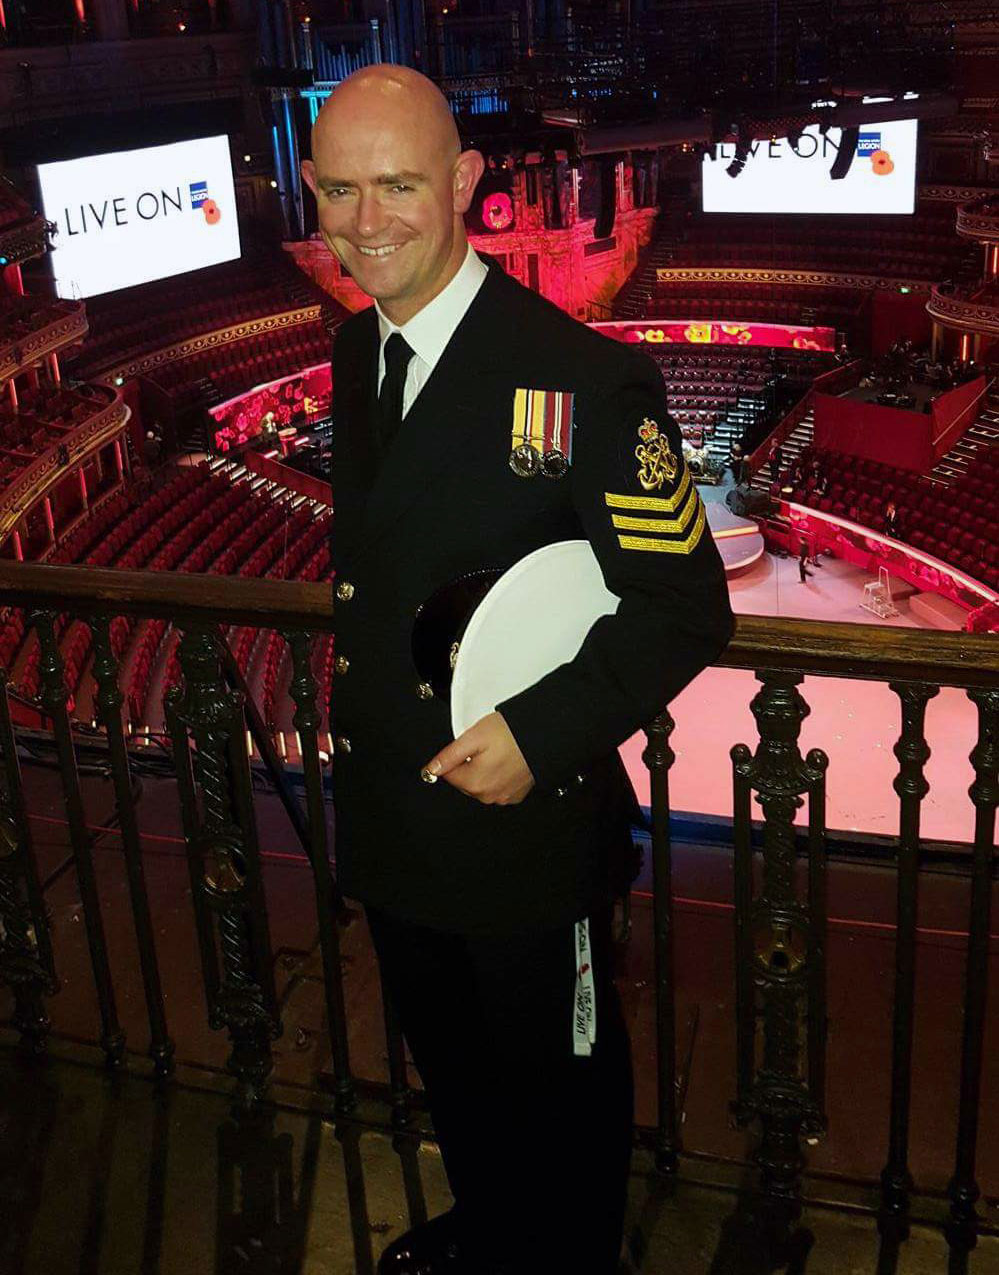 Chief Petty Officer Andrew Cooper